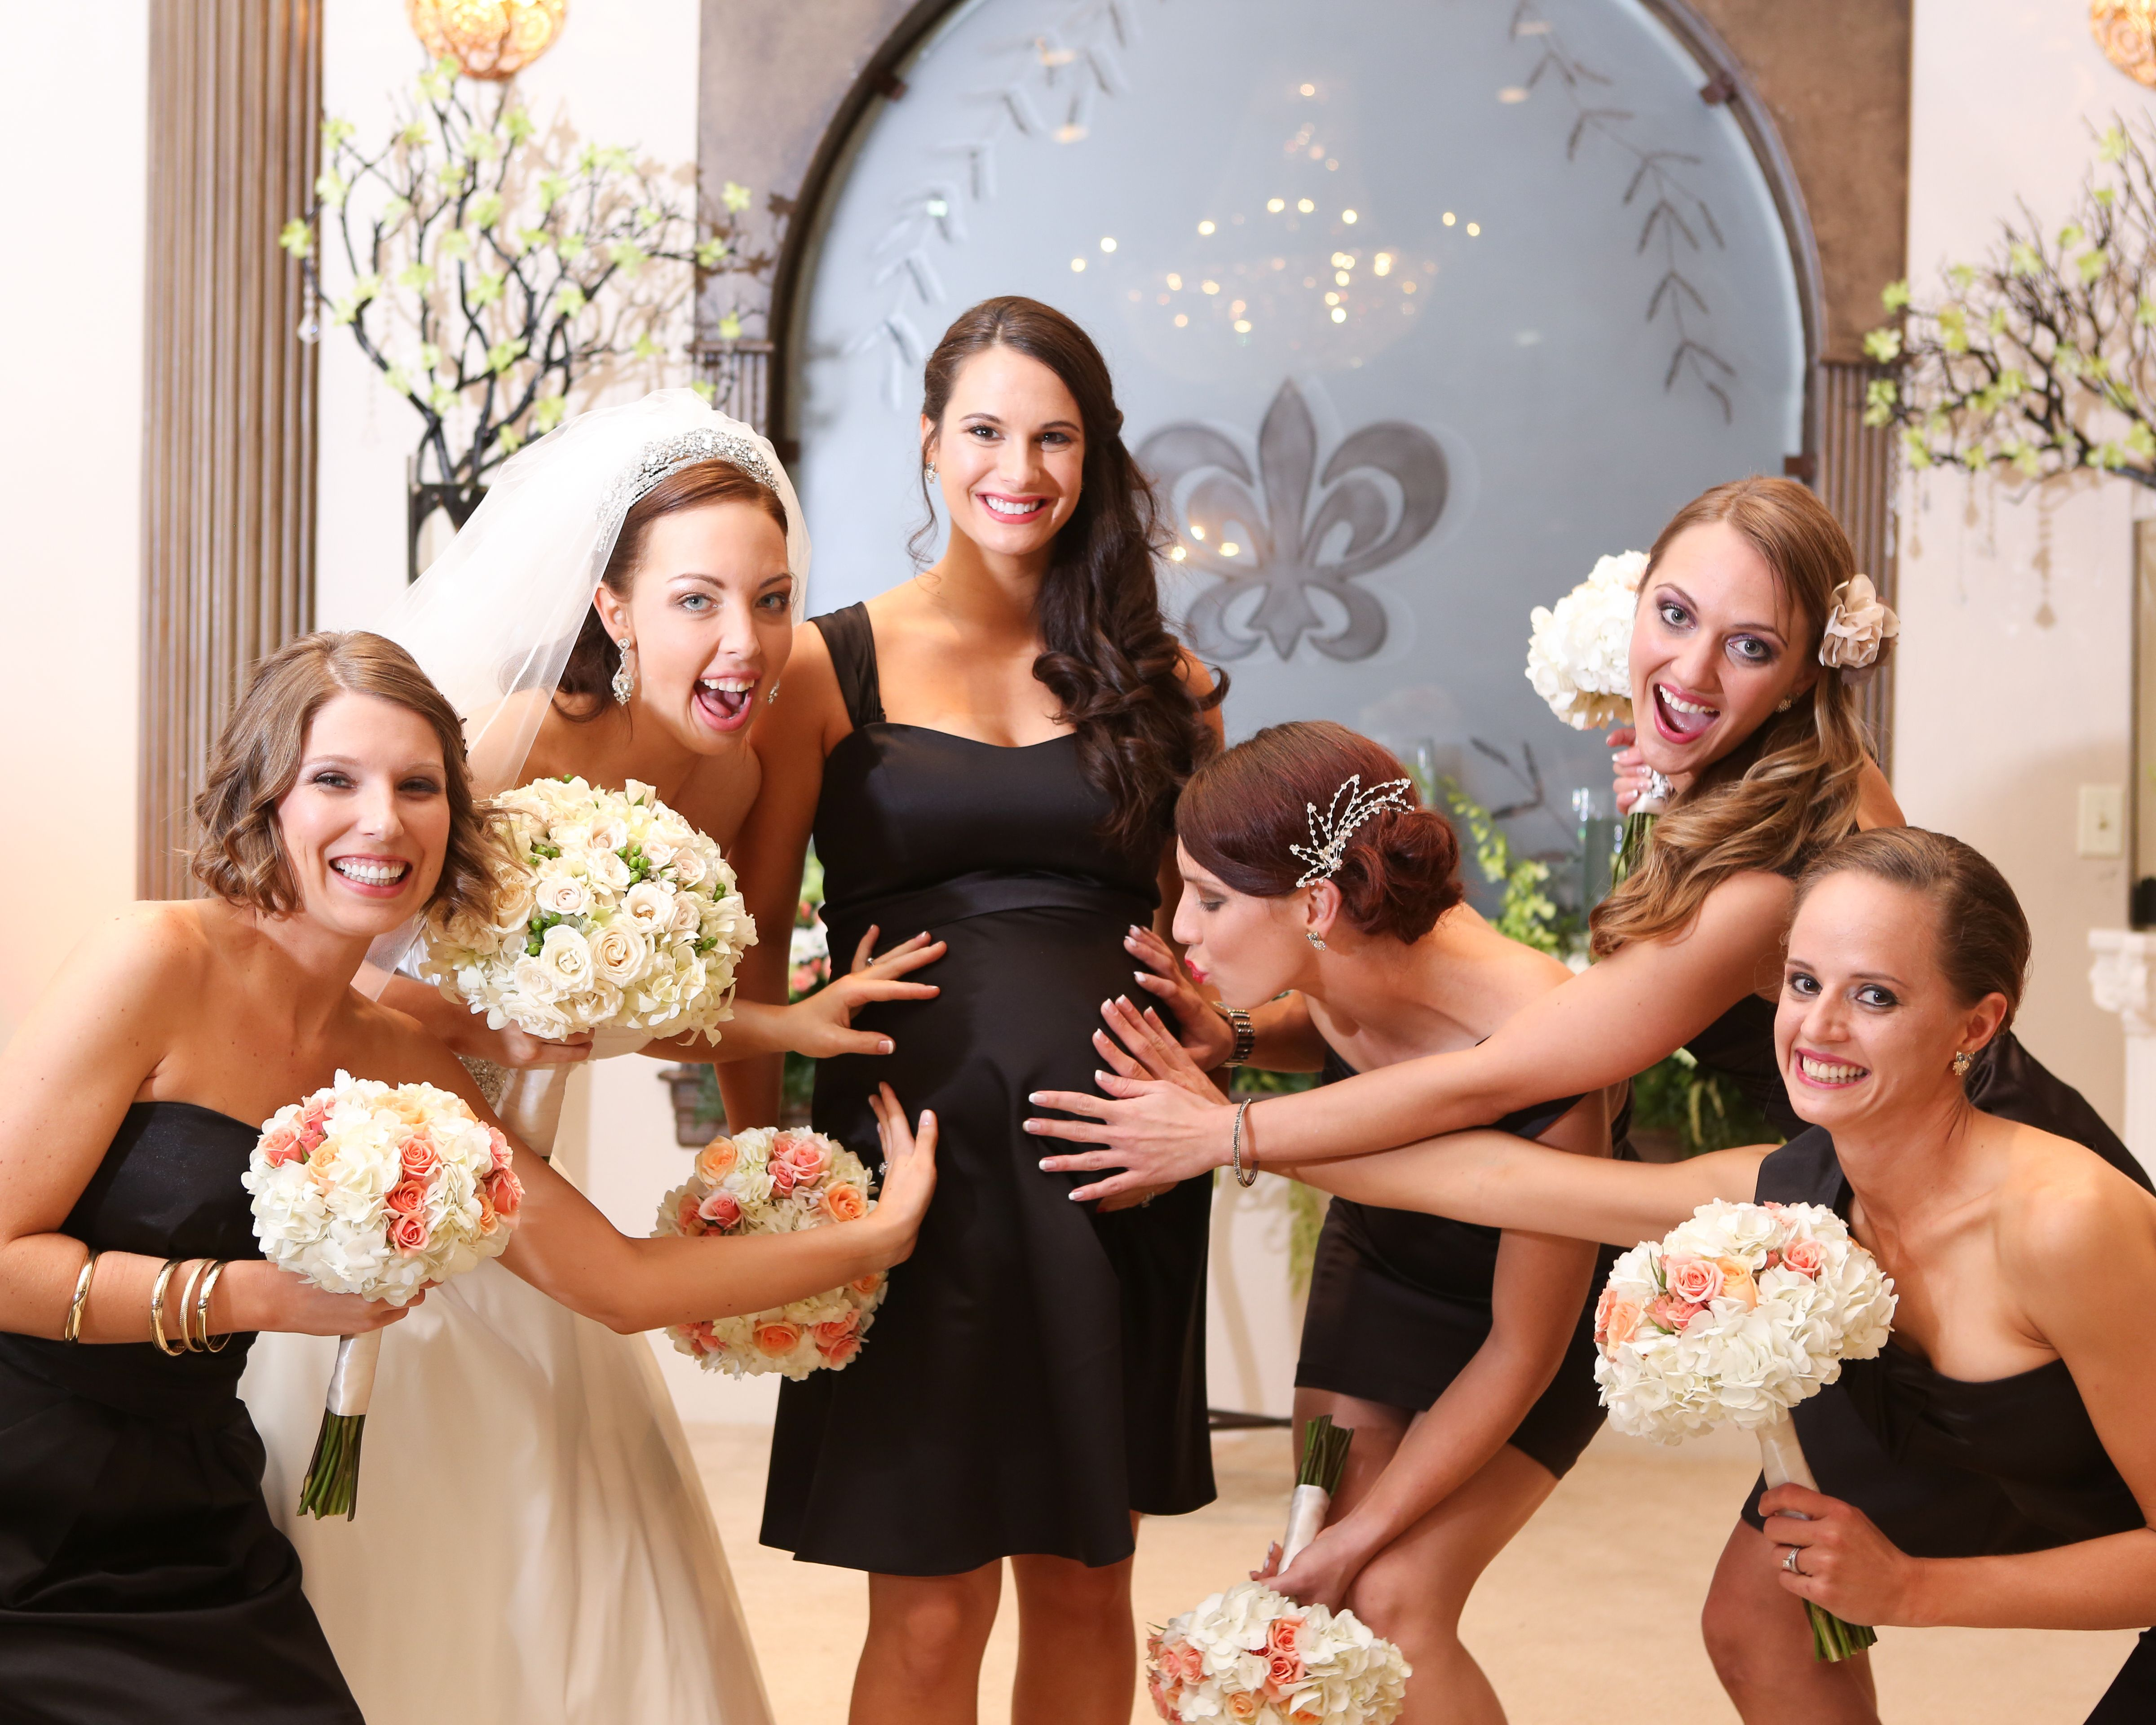 Best 25 pregnant bridesmaid ideas on pinterest pregnant dresses pregnant bridesmaid photo idea give her a little moment to shine during the wedding photos ombrellifo Choice Image